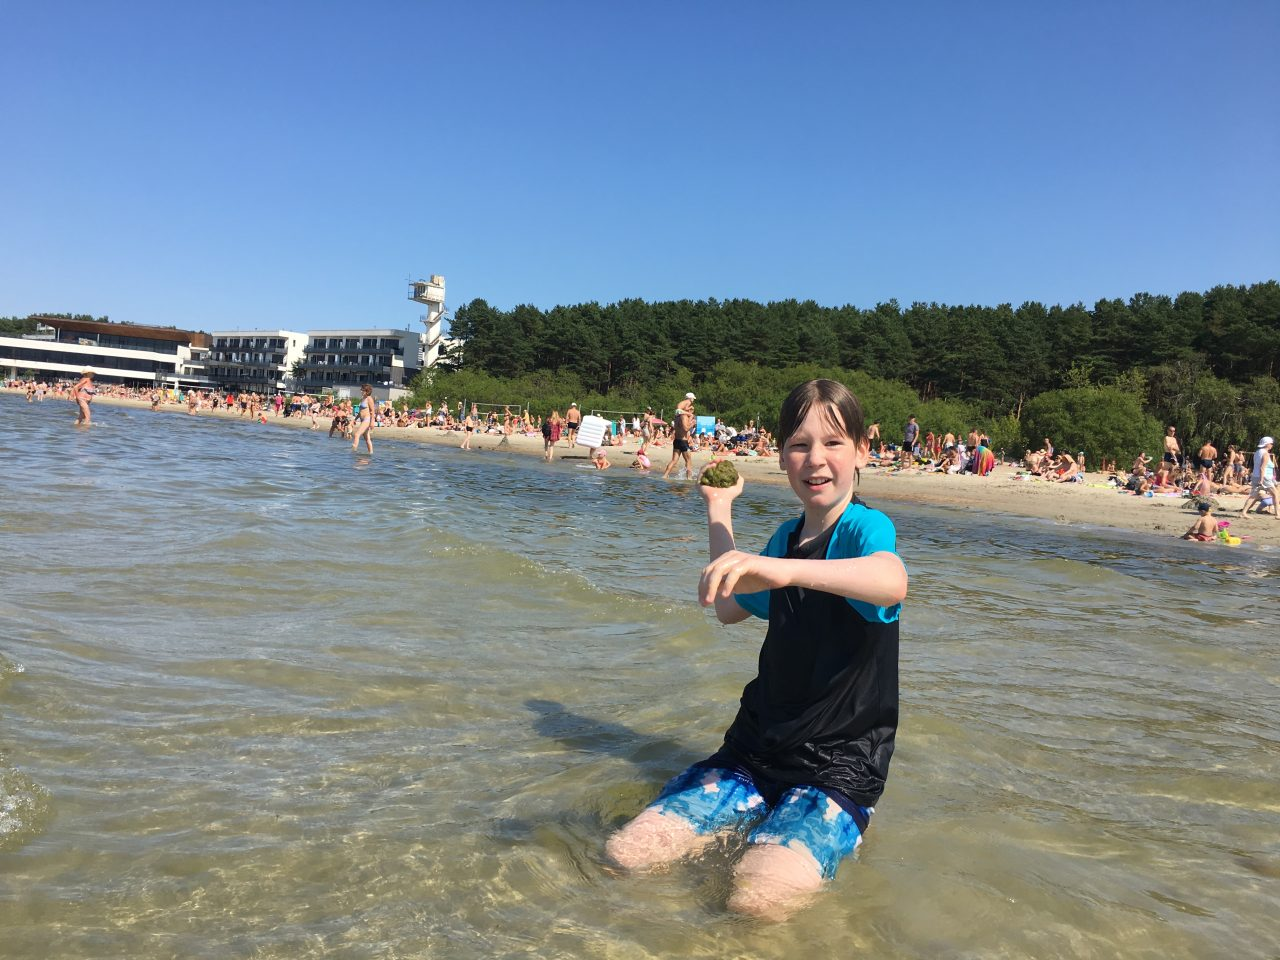 Boy throwing sand at Pirita Beach in Tallinn